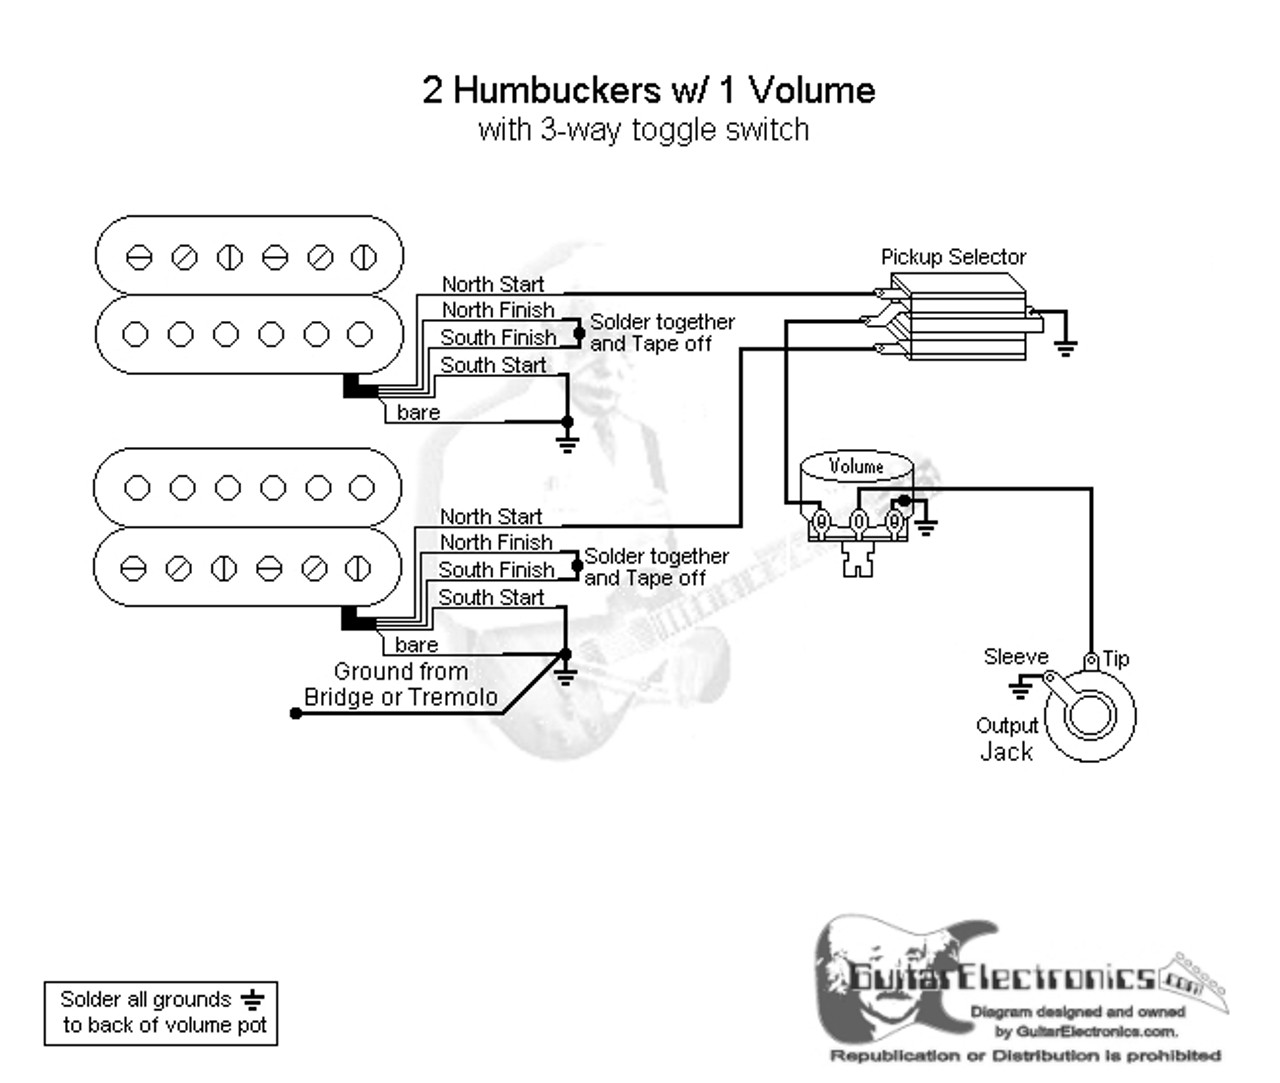 hight resolution of hum 2 pickup wiring diagrams 2 humbuckers 3 way toggle switch 1 volumewd2hh3t10 00 38554 1470694344 jpg c u003d2